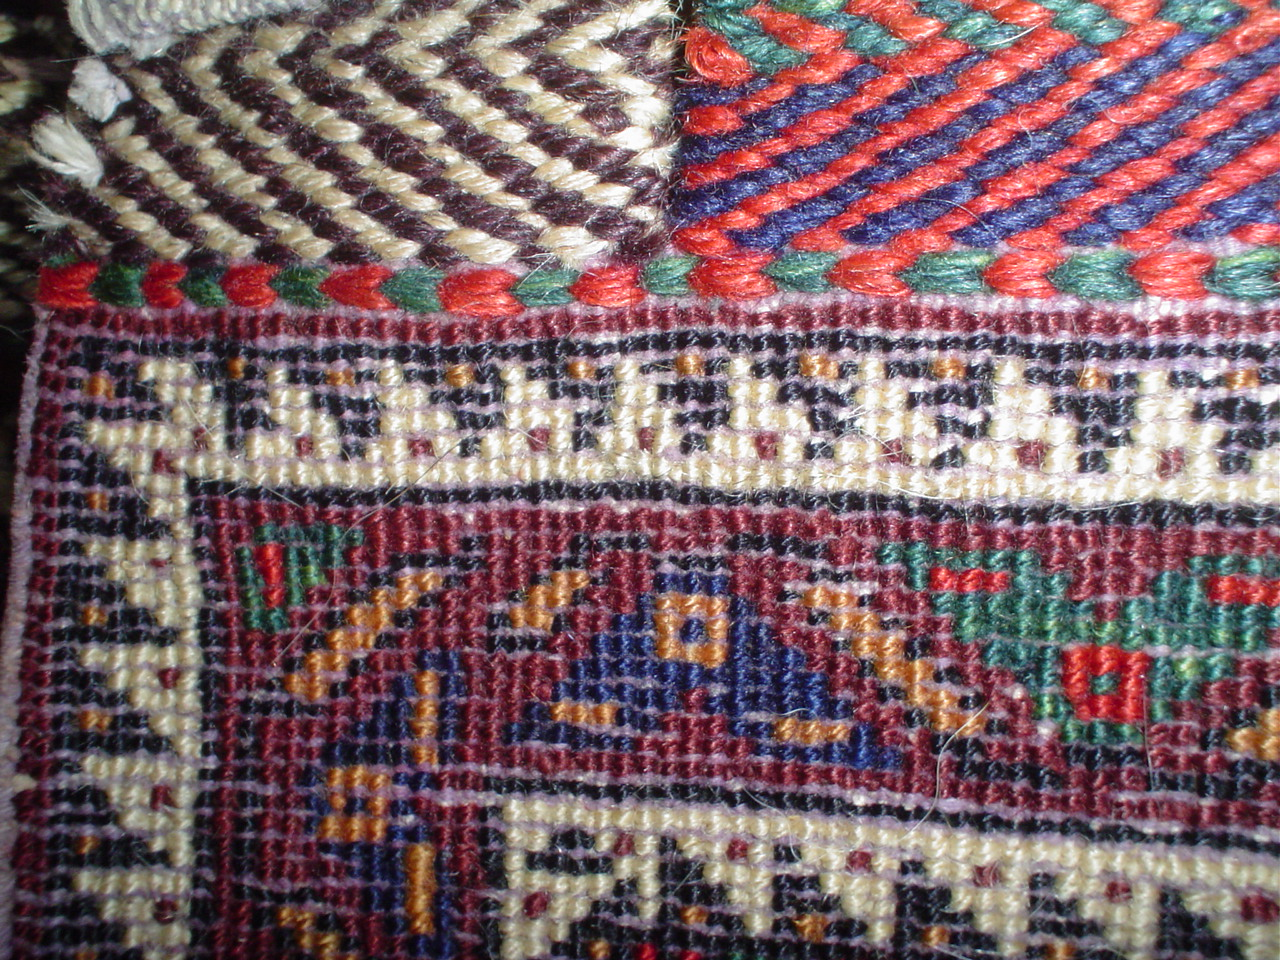 #16b) Afshar bag face, back of the weaving.